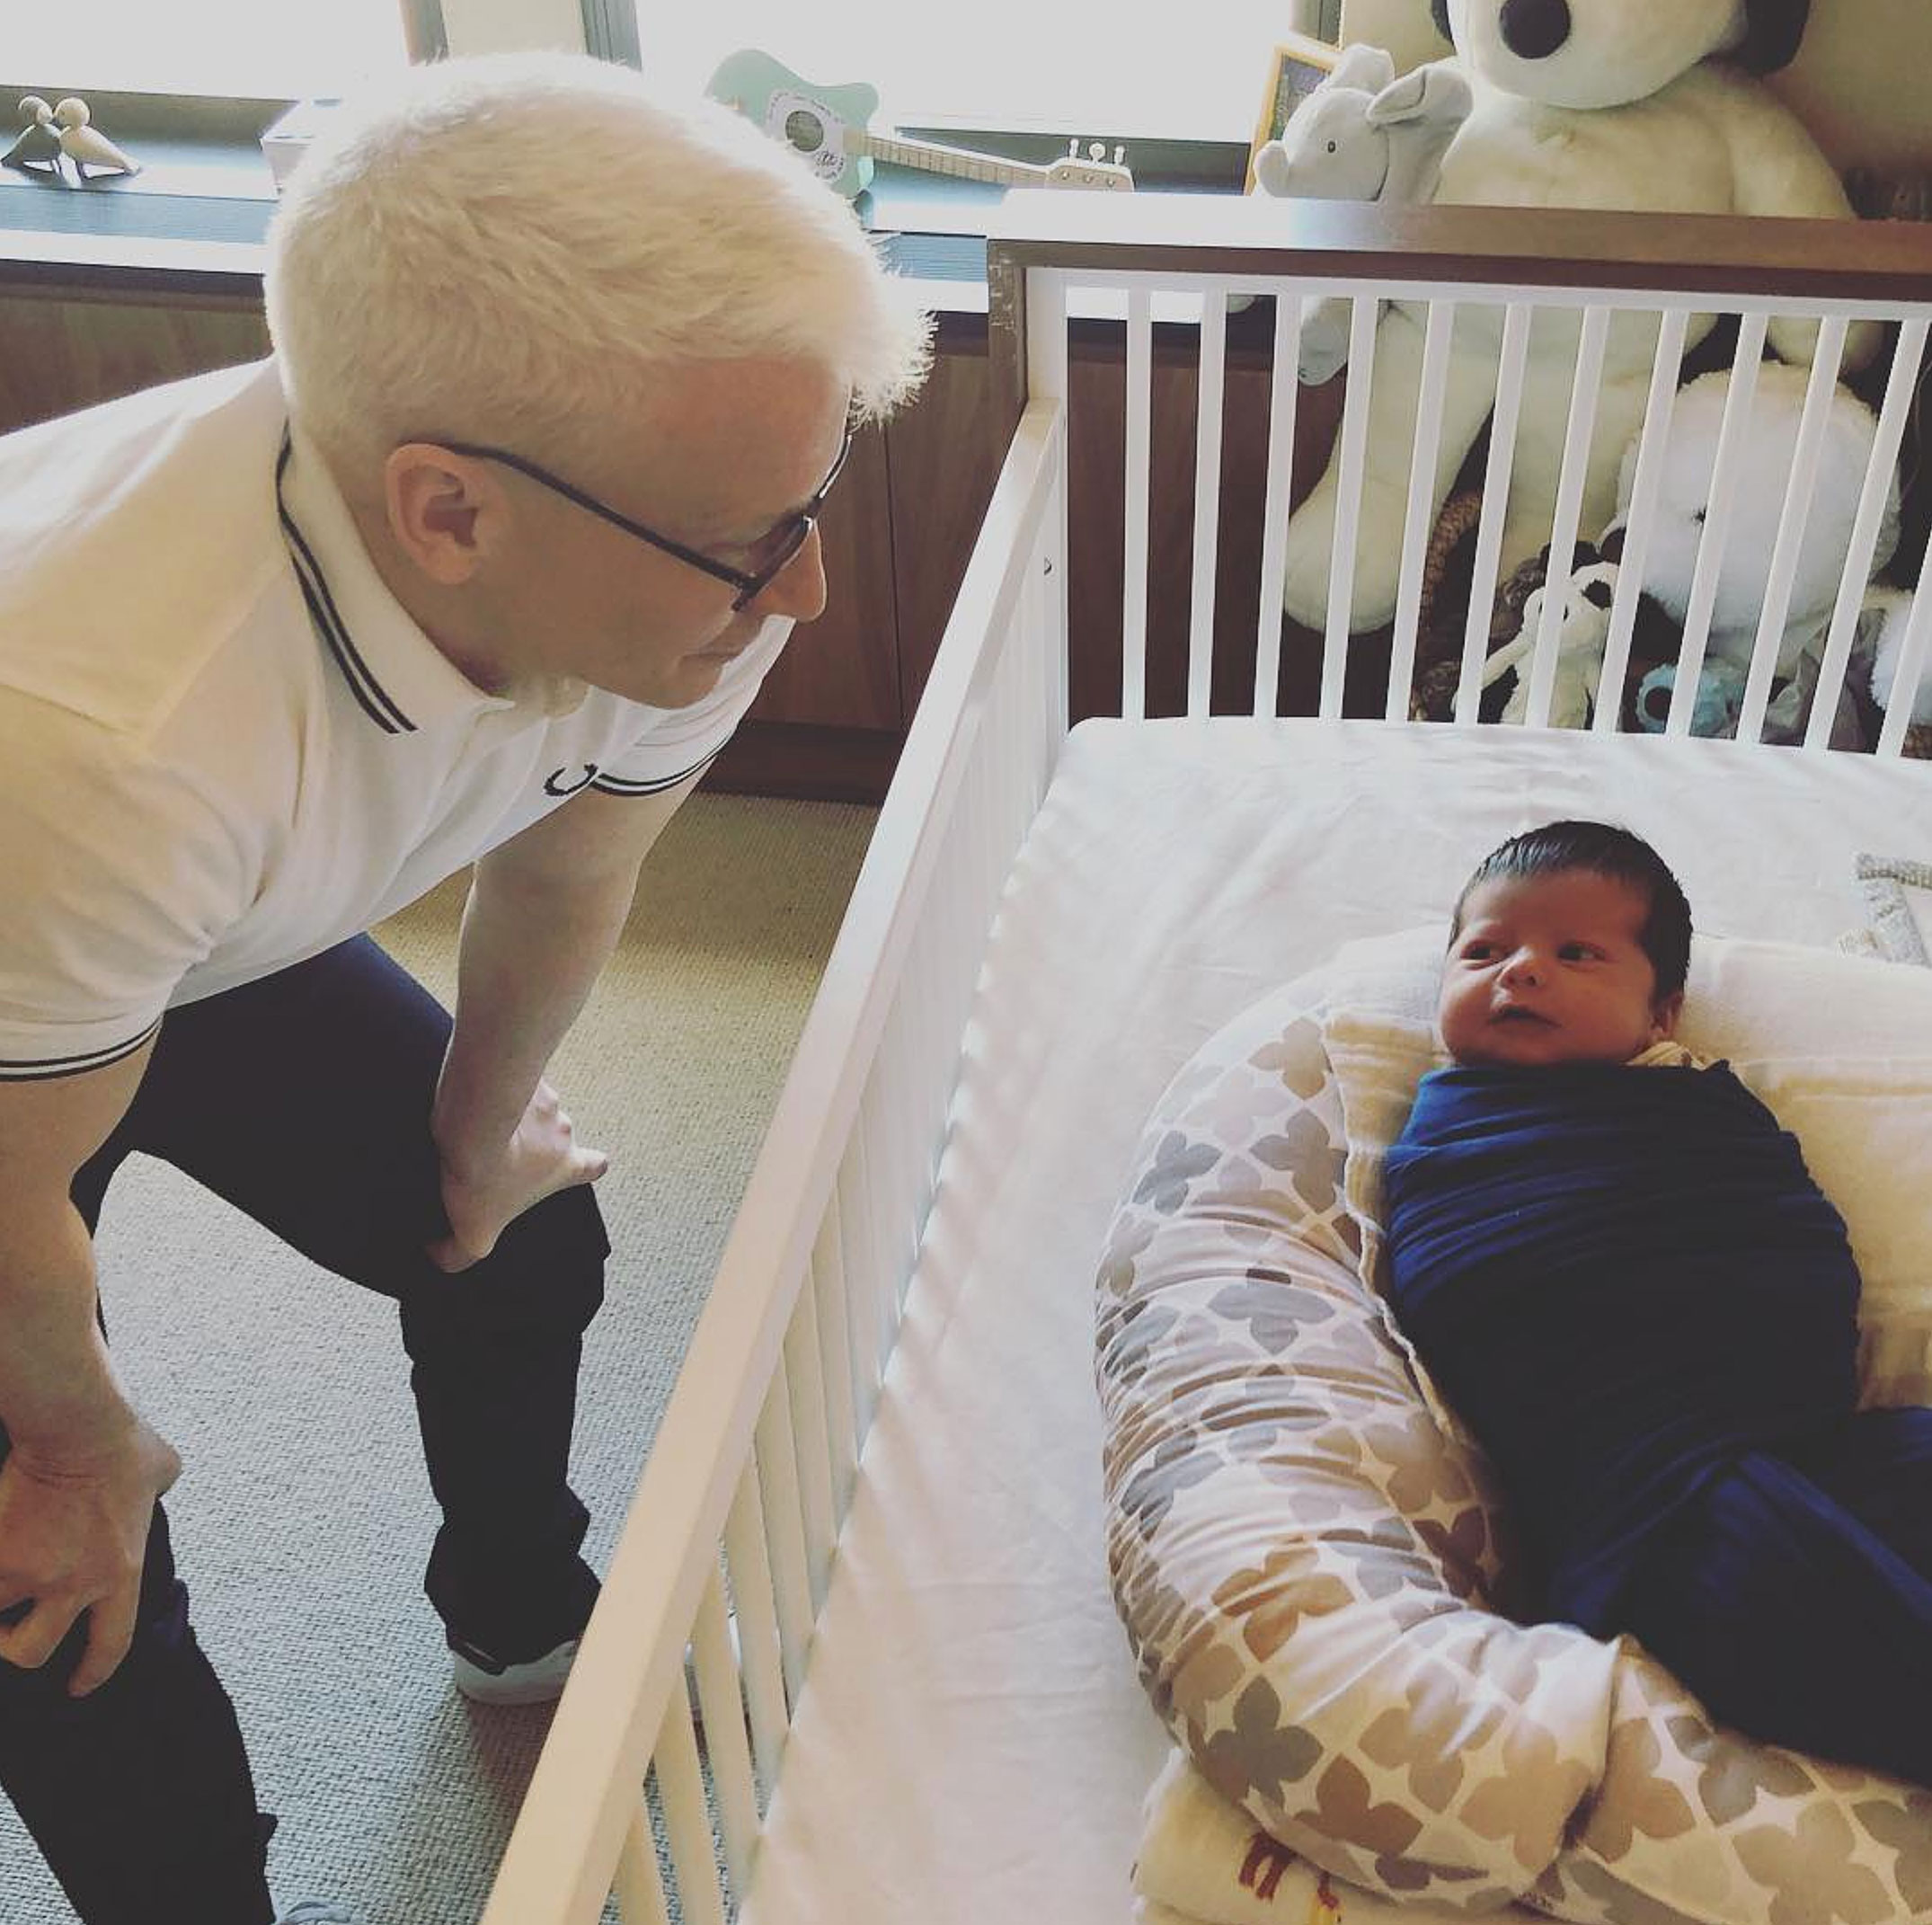 Andy Cohen Introduces Baby Benjamin To Anderson Cooper - The journalist and Cohen have remained good friends after meeting on a failed blind date and have cohosted CNN's New Year's Eve coverage since 2018.